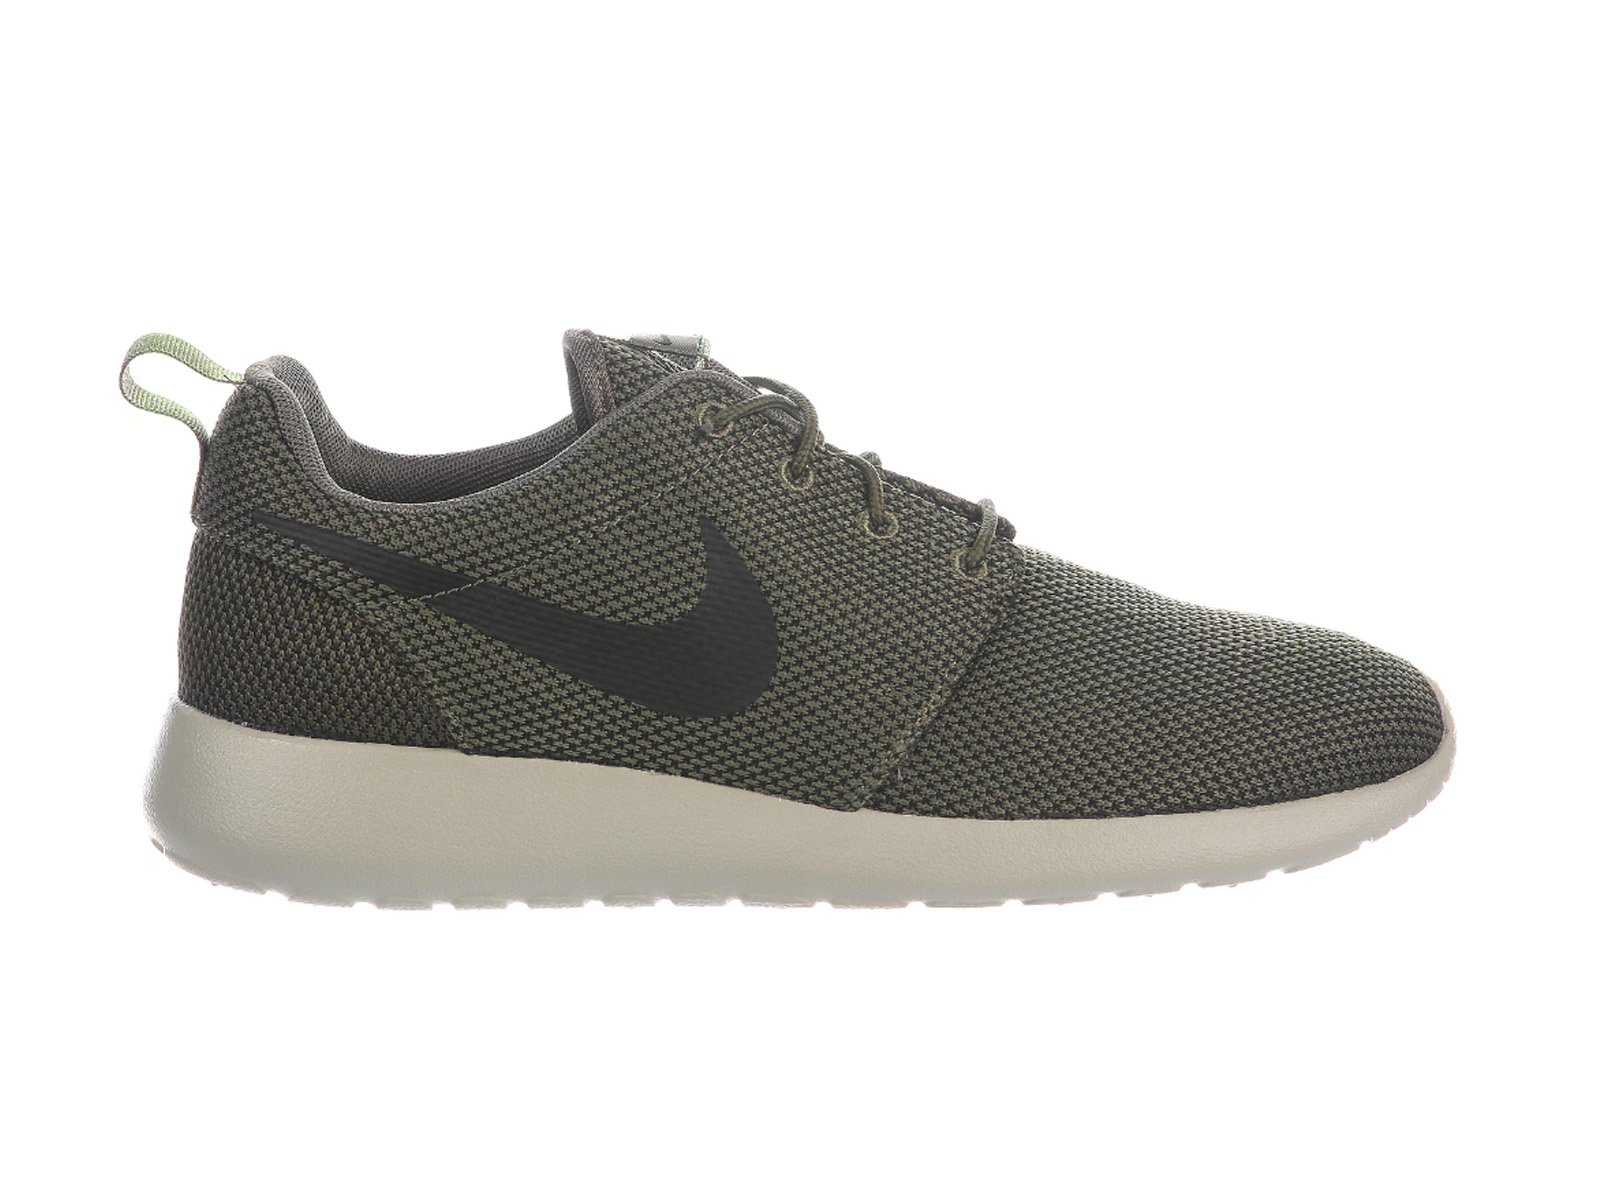 low priced ba48a 62c06 Galleon - NIKE Mens Roshe One Medium OliveBlackSequoiaPale Grey Nylon Running  Shoes 11.5 D(M) US